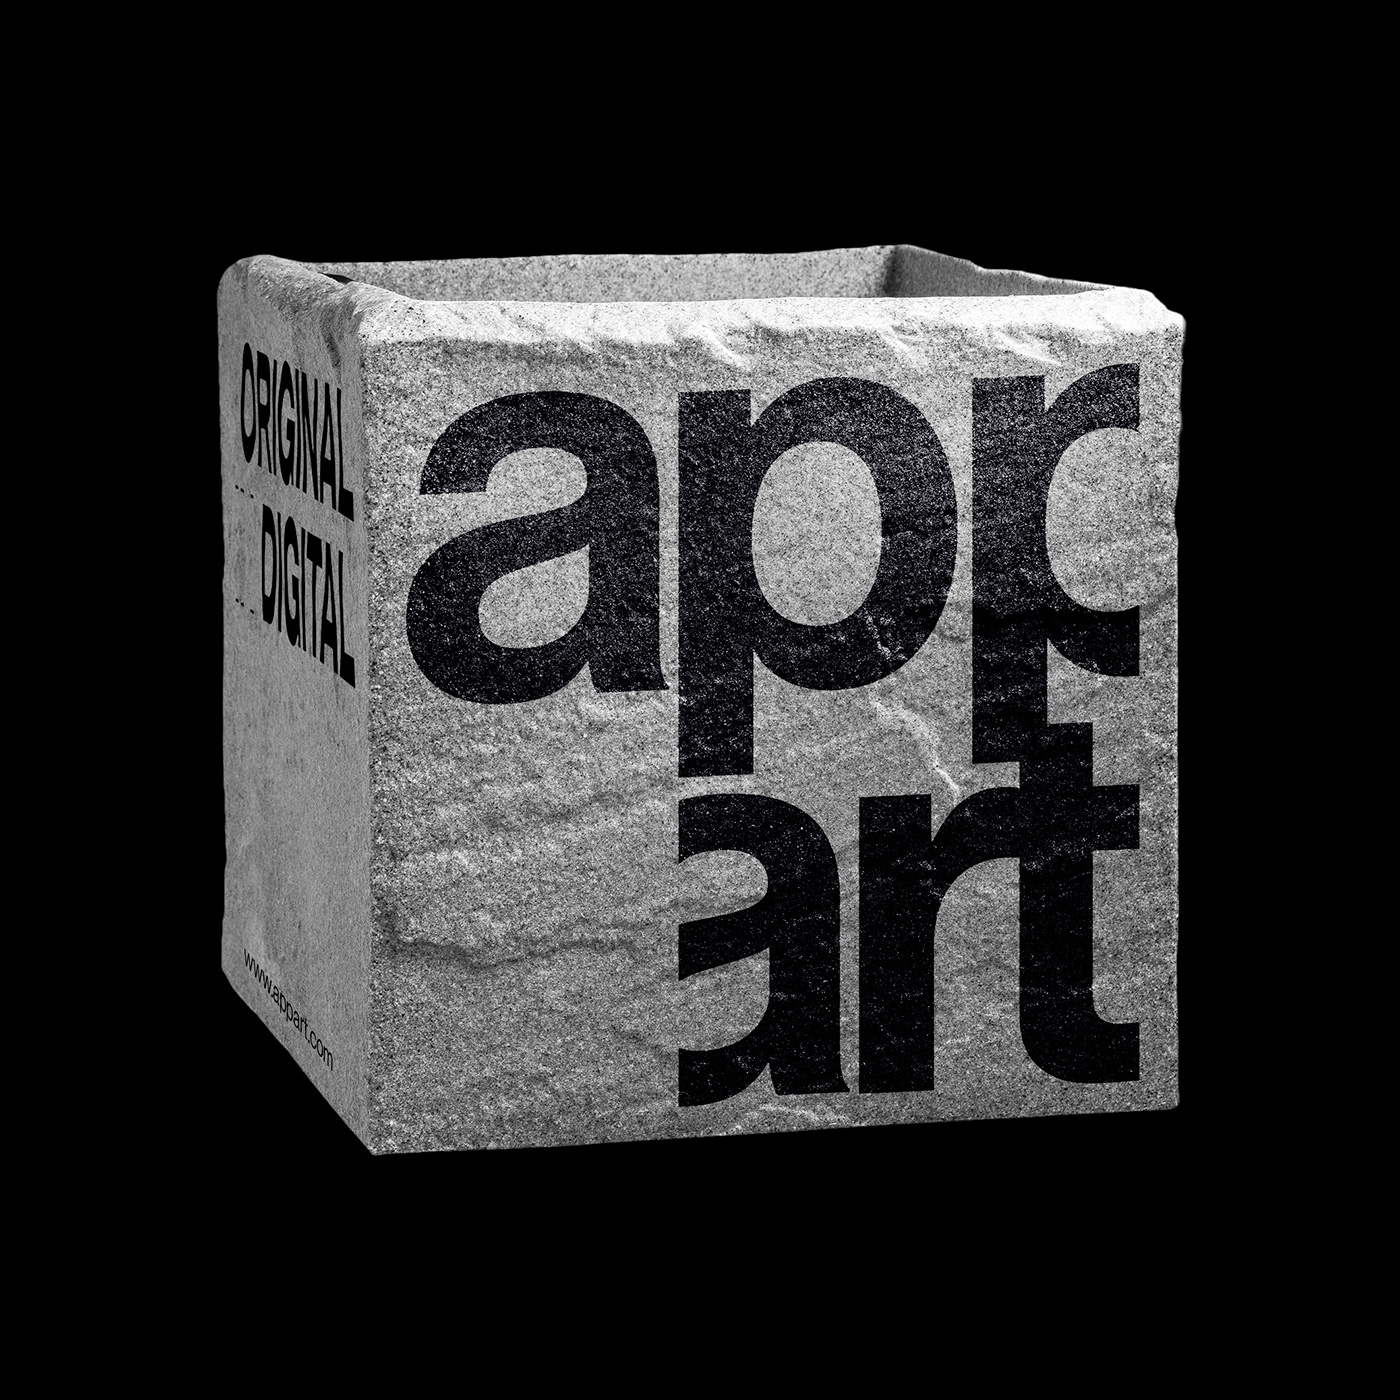 Appart_stone brick